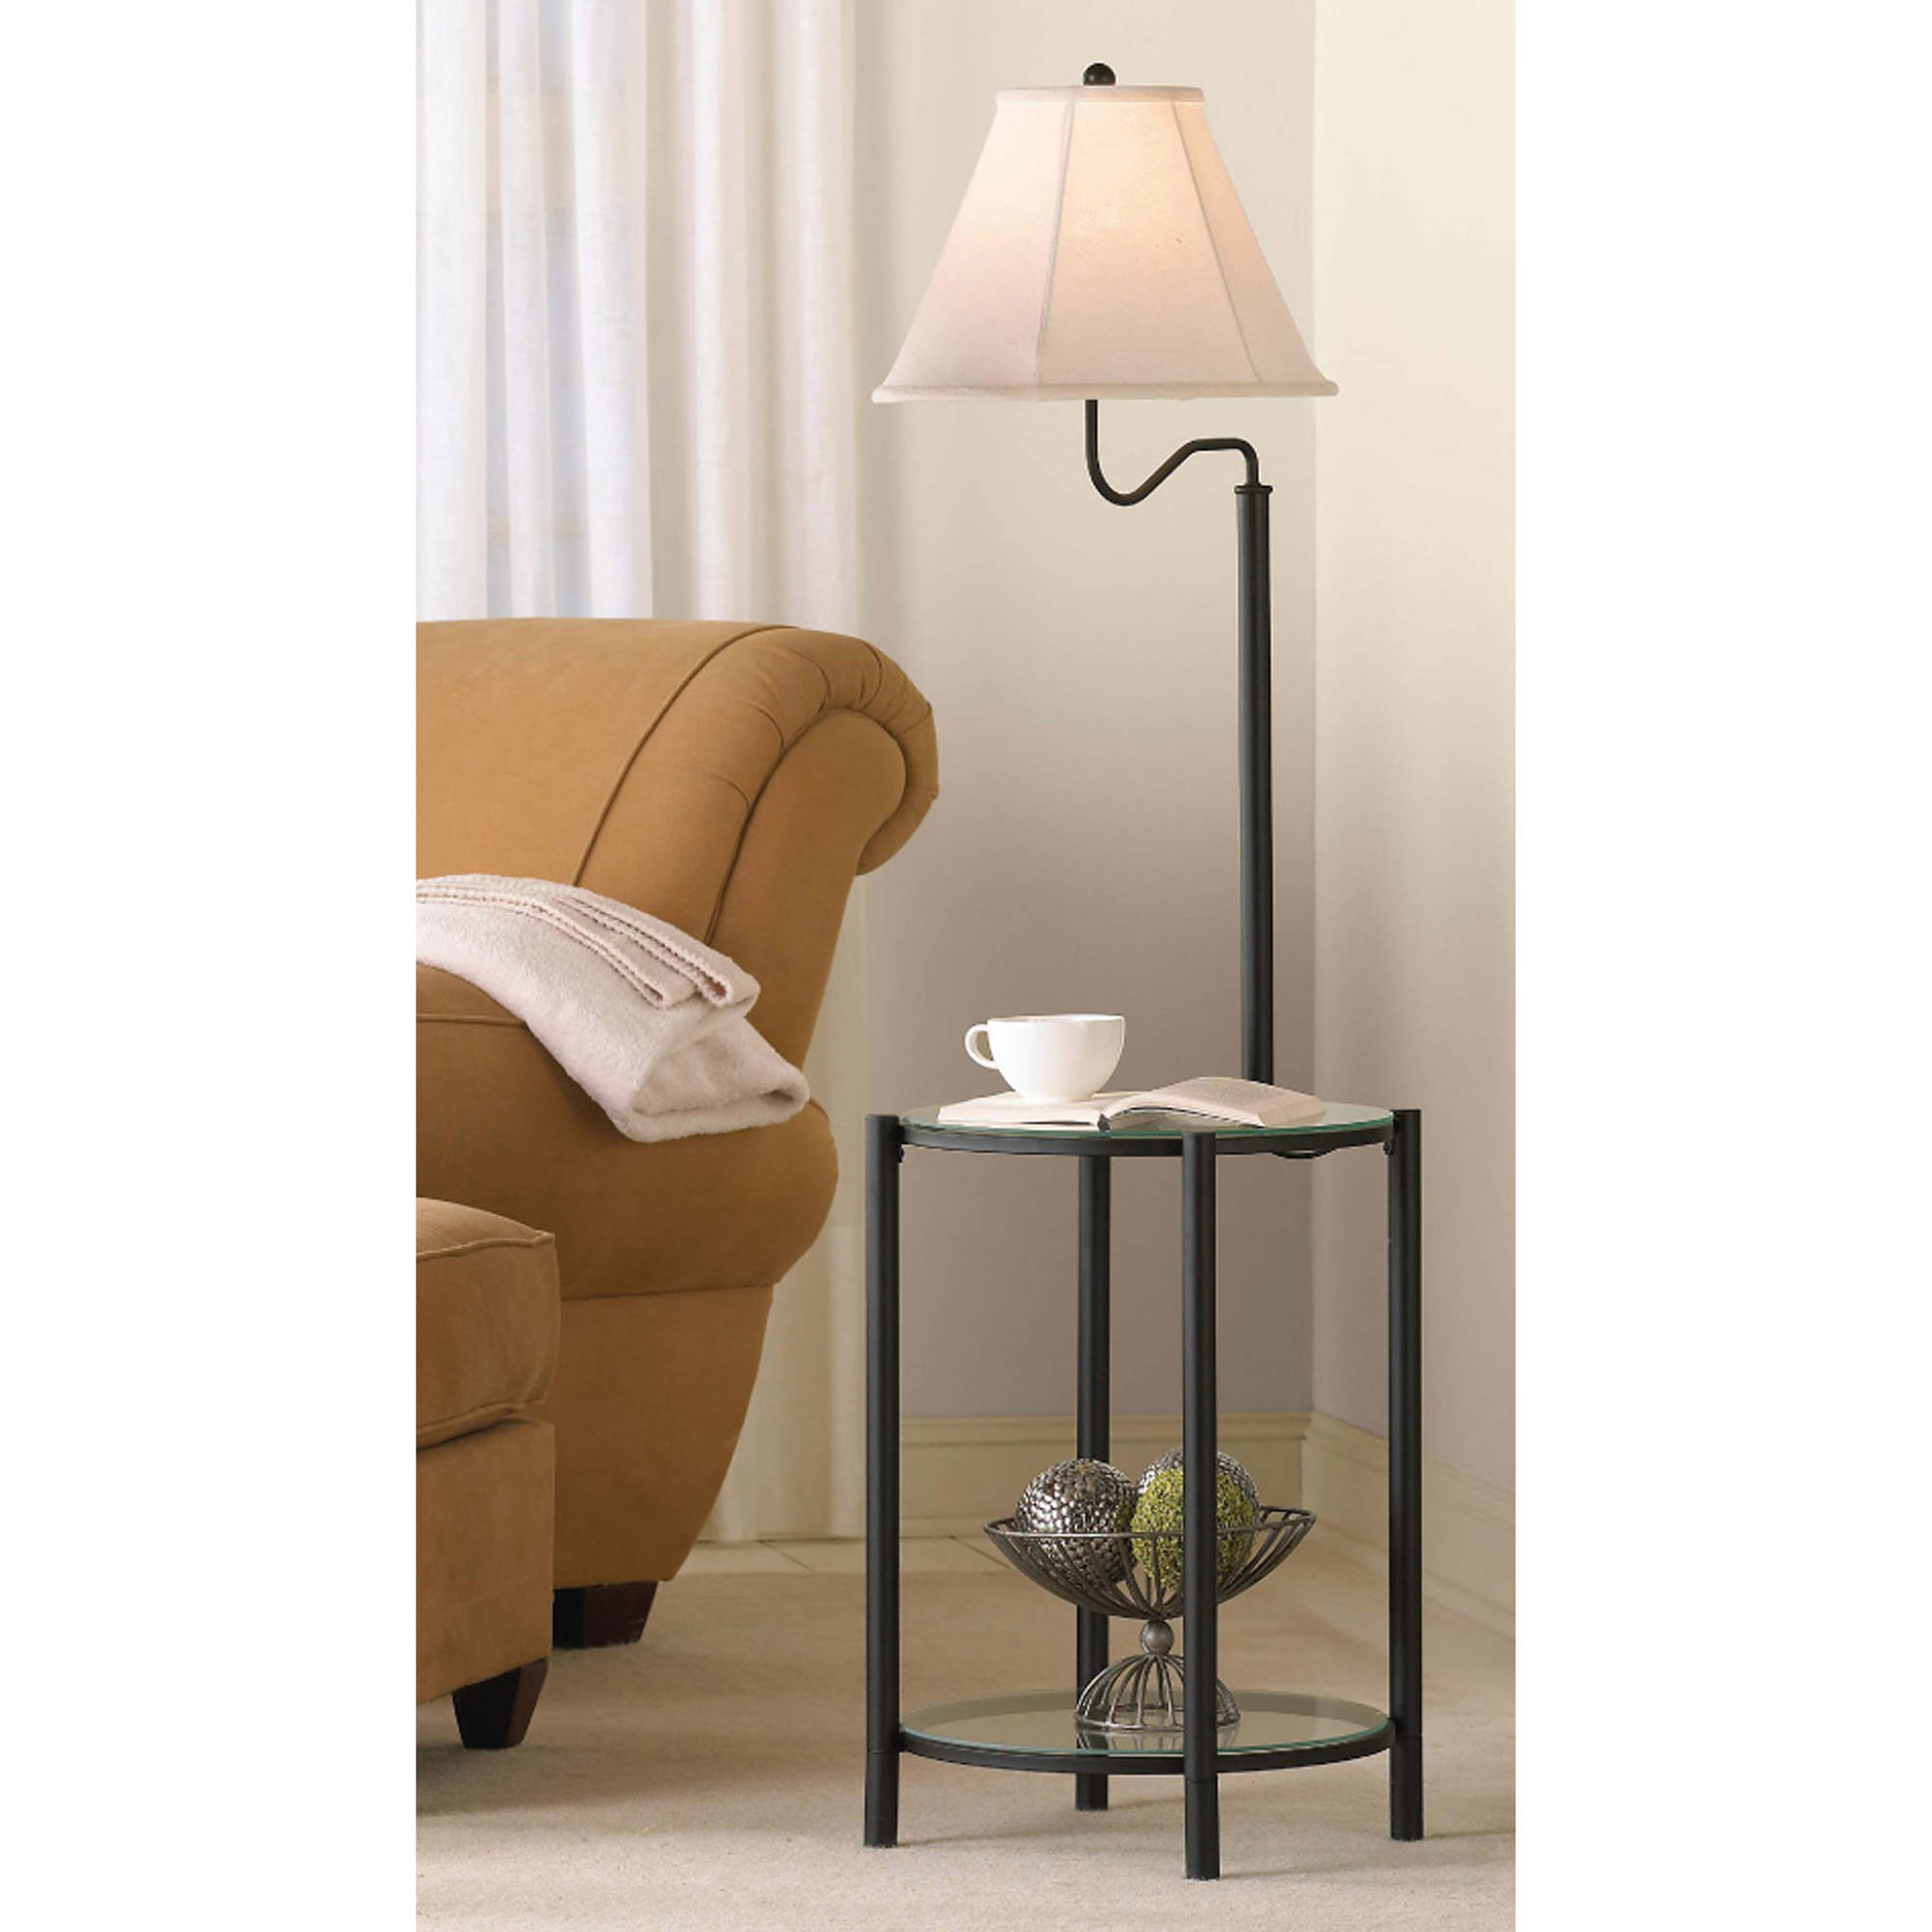 mainstays glass end table floor lamp matte black cfl bulb included round accent hairpin leg nautical nursery meyda tiffany lamps coastal bedroom decor pond lily quatrefoil side